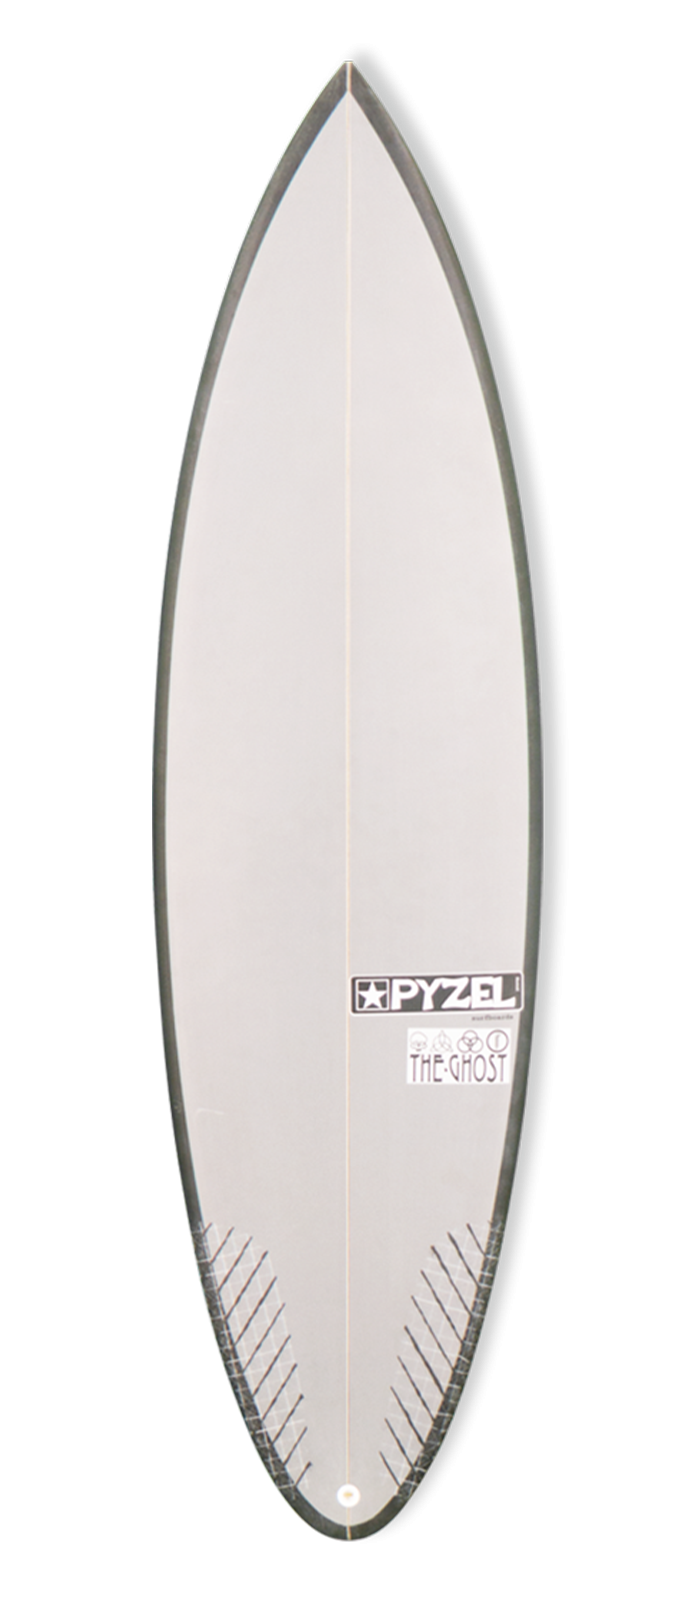 THE GHOST surfboard model deck